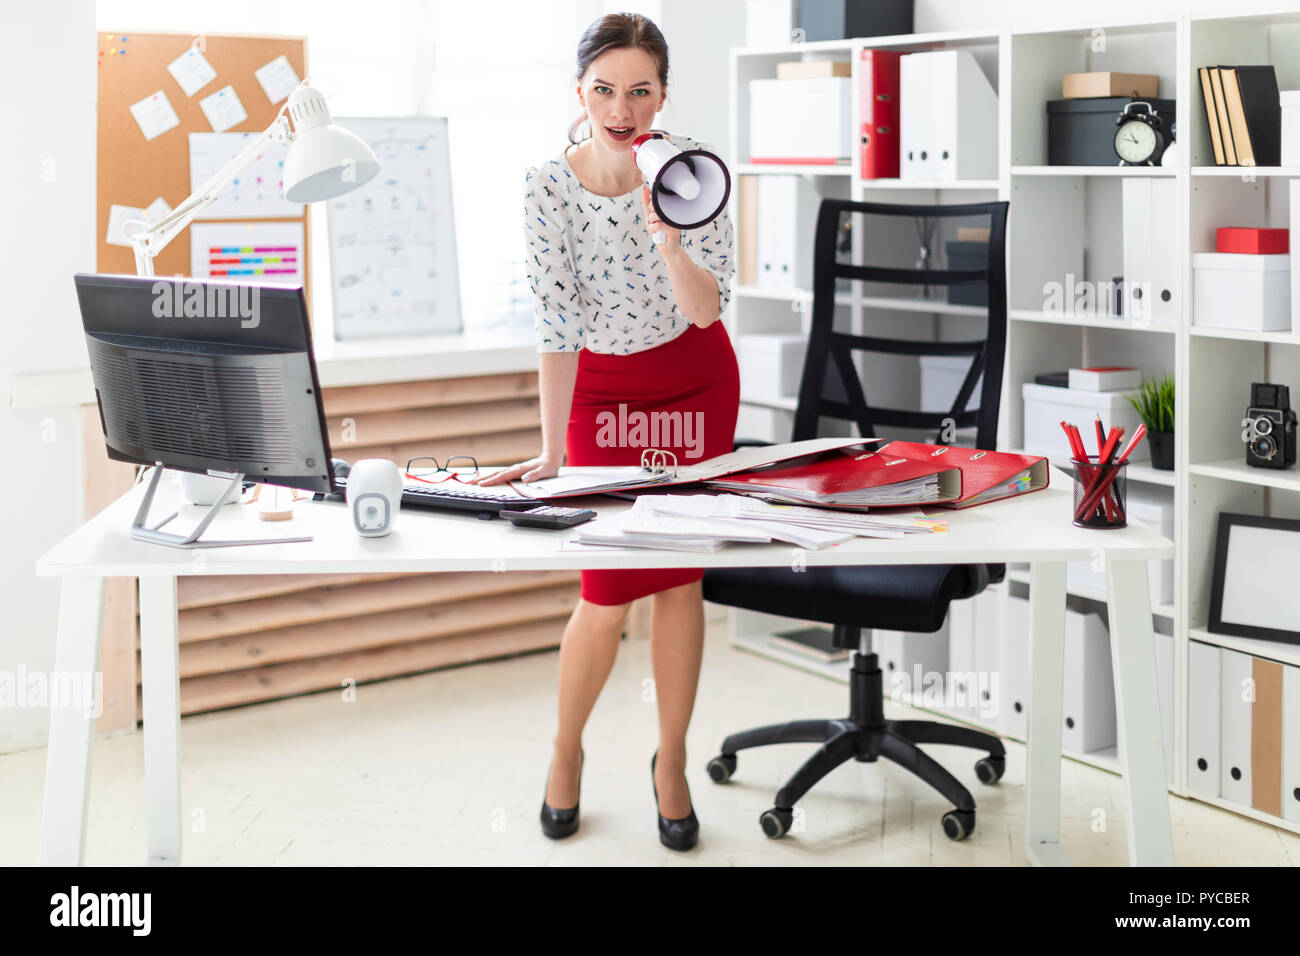 A young girl stands in the office near the table and says in a shout. - Stock Image